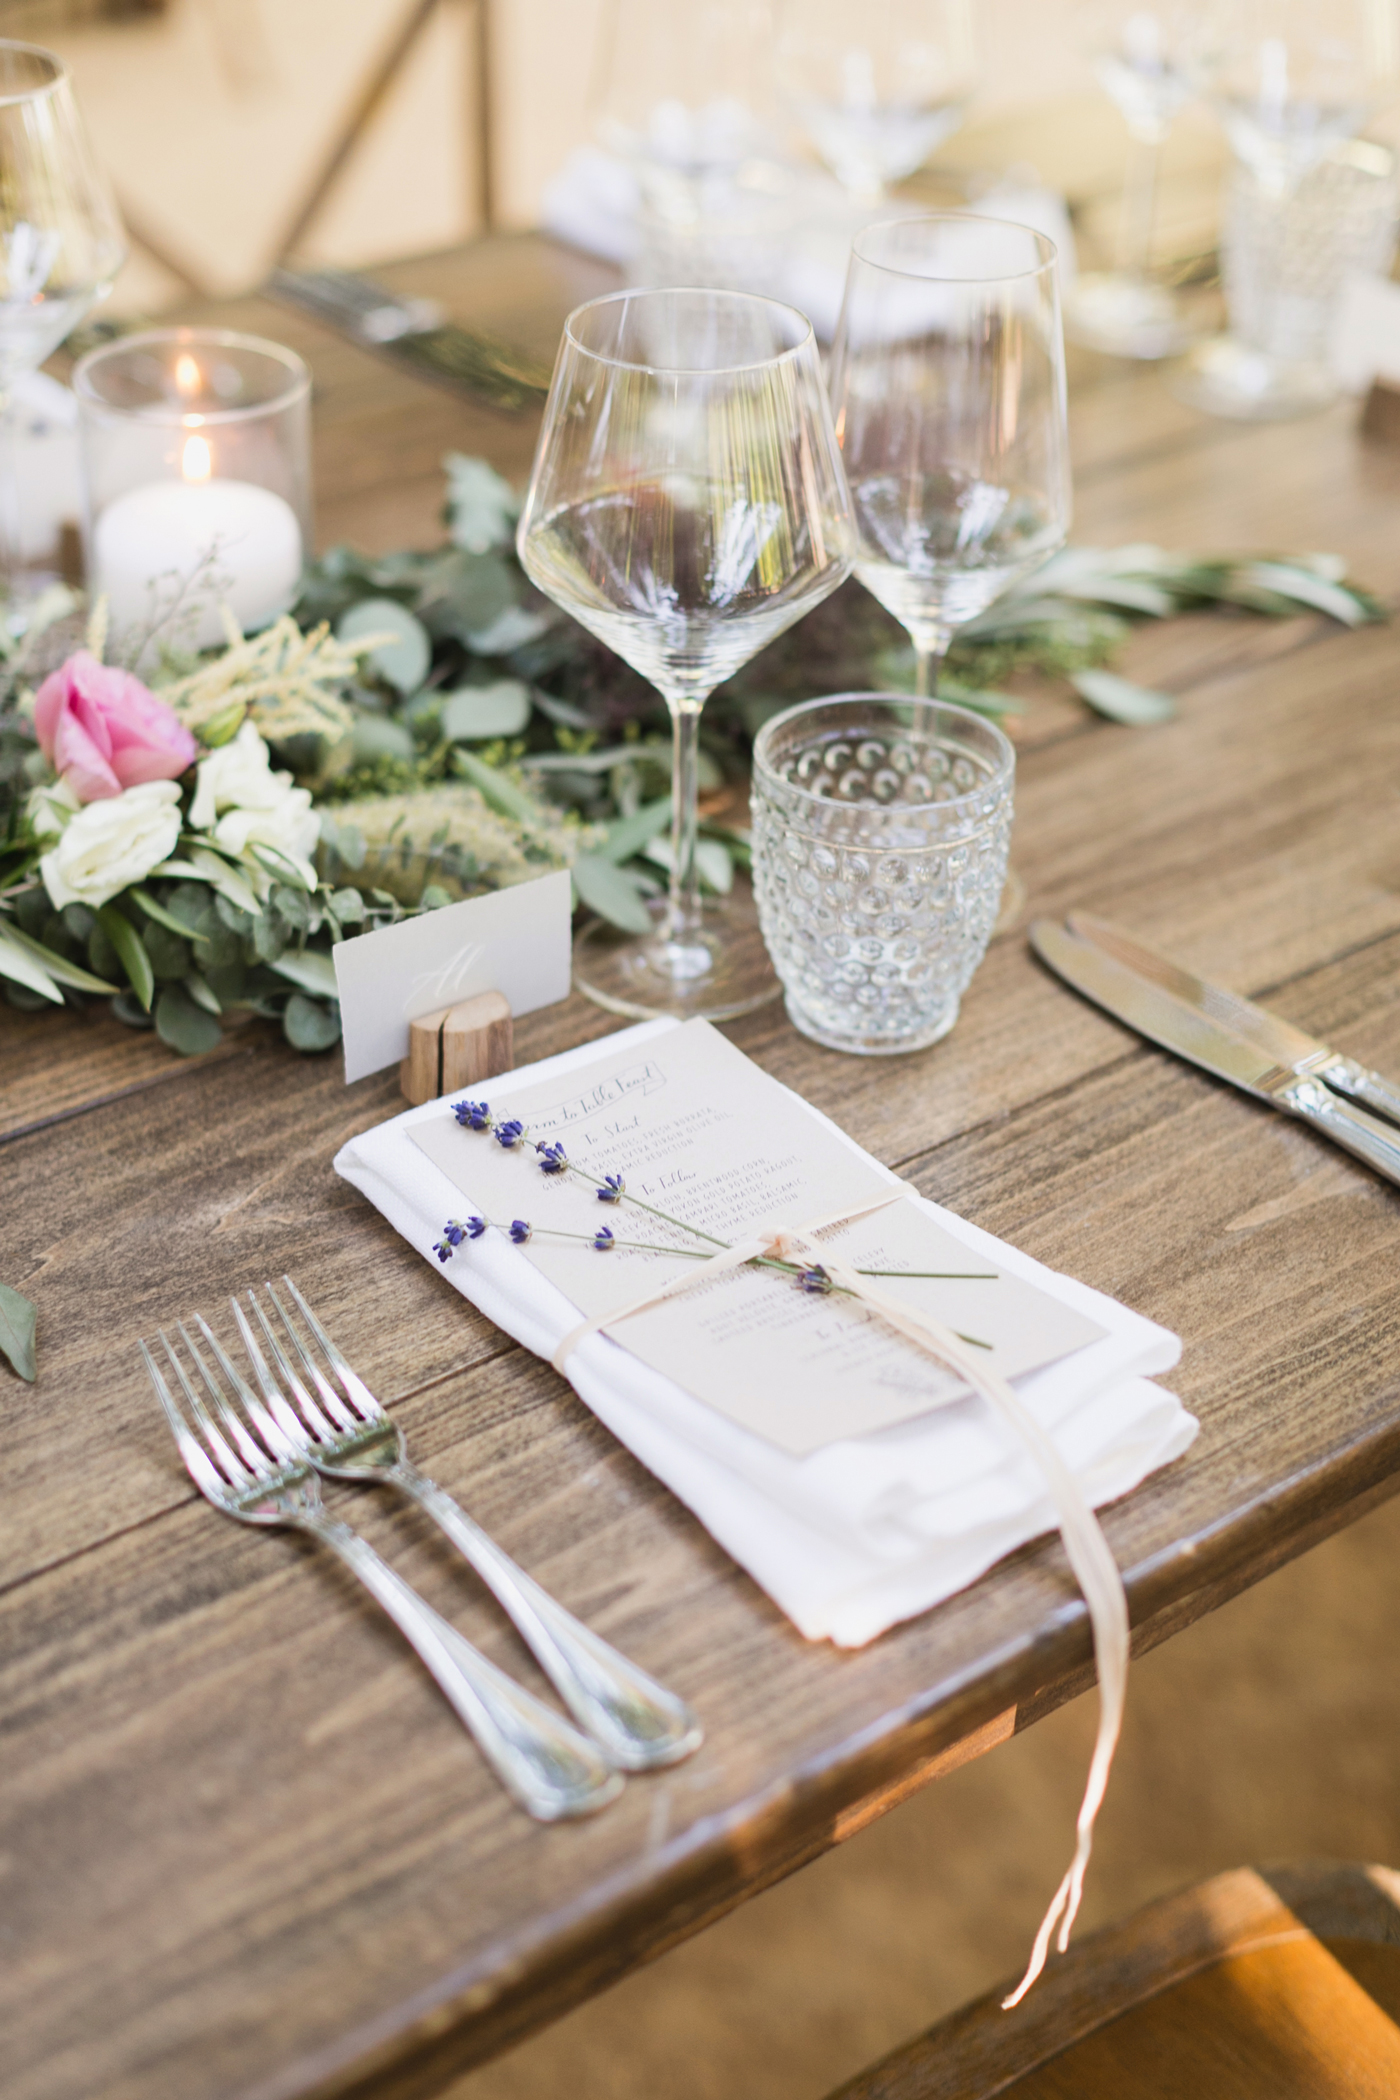 menus tied with string and lavender sprigs on wooden table